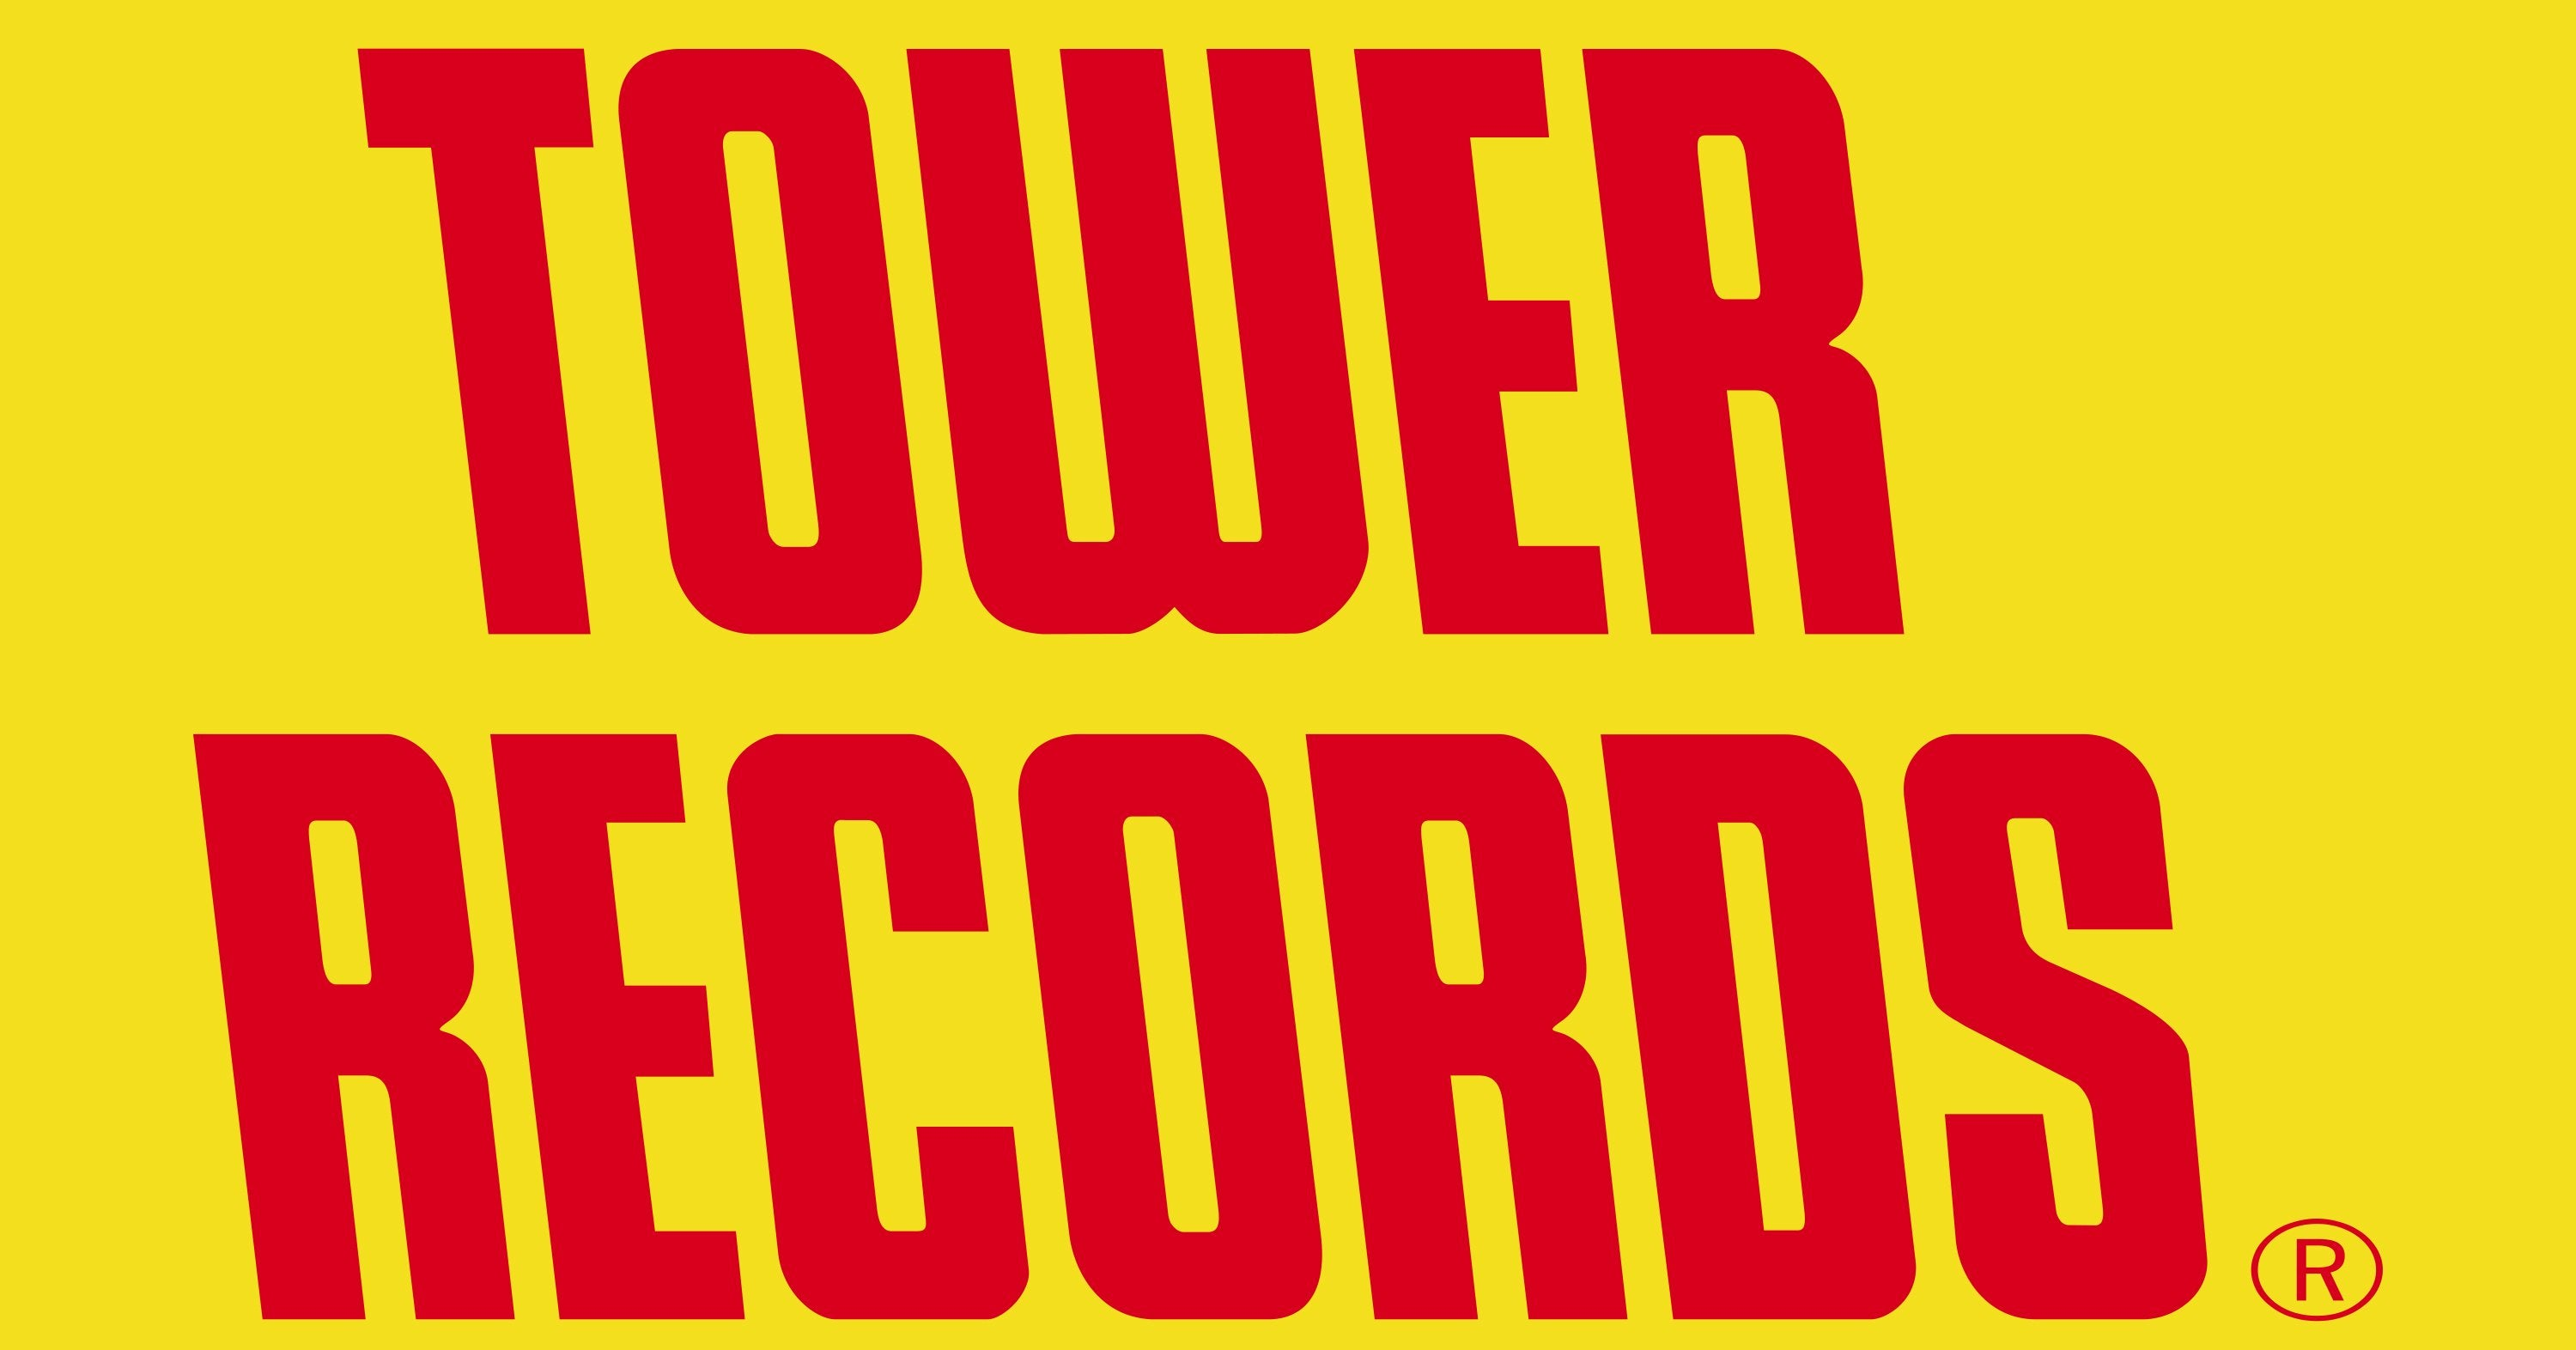 towerrecords.com